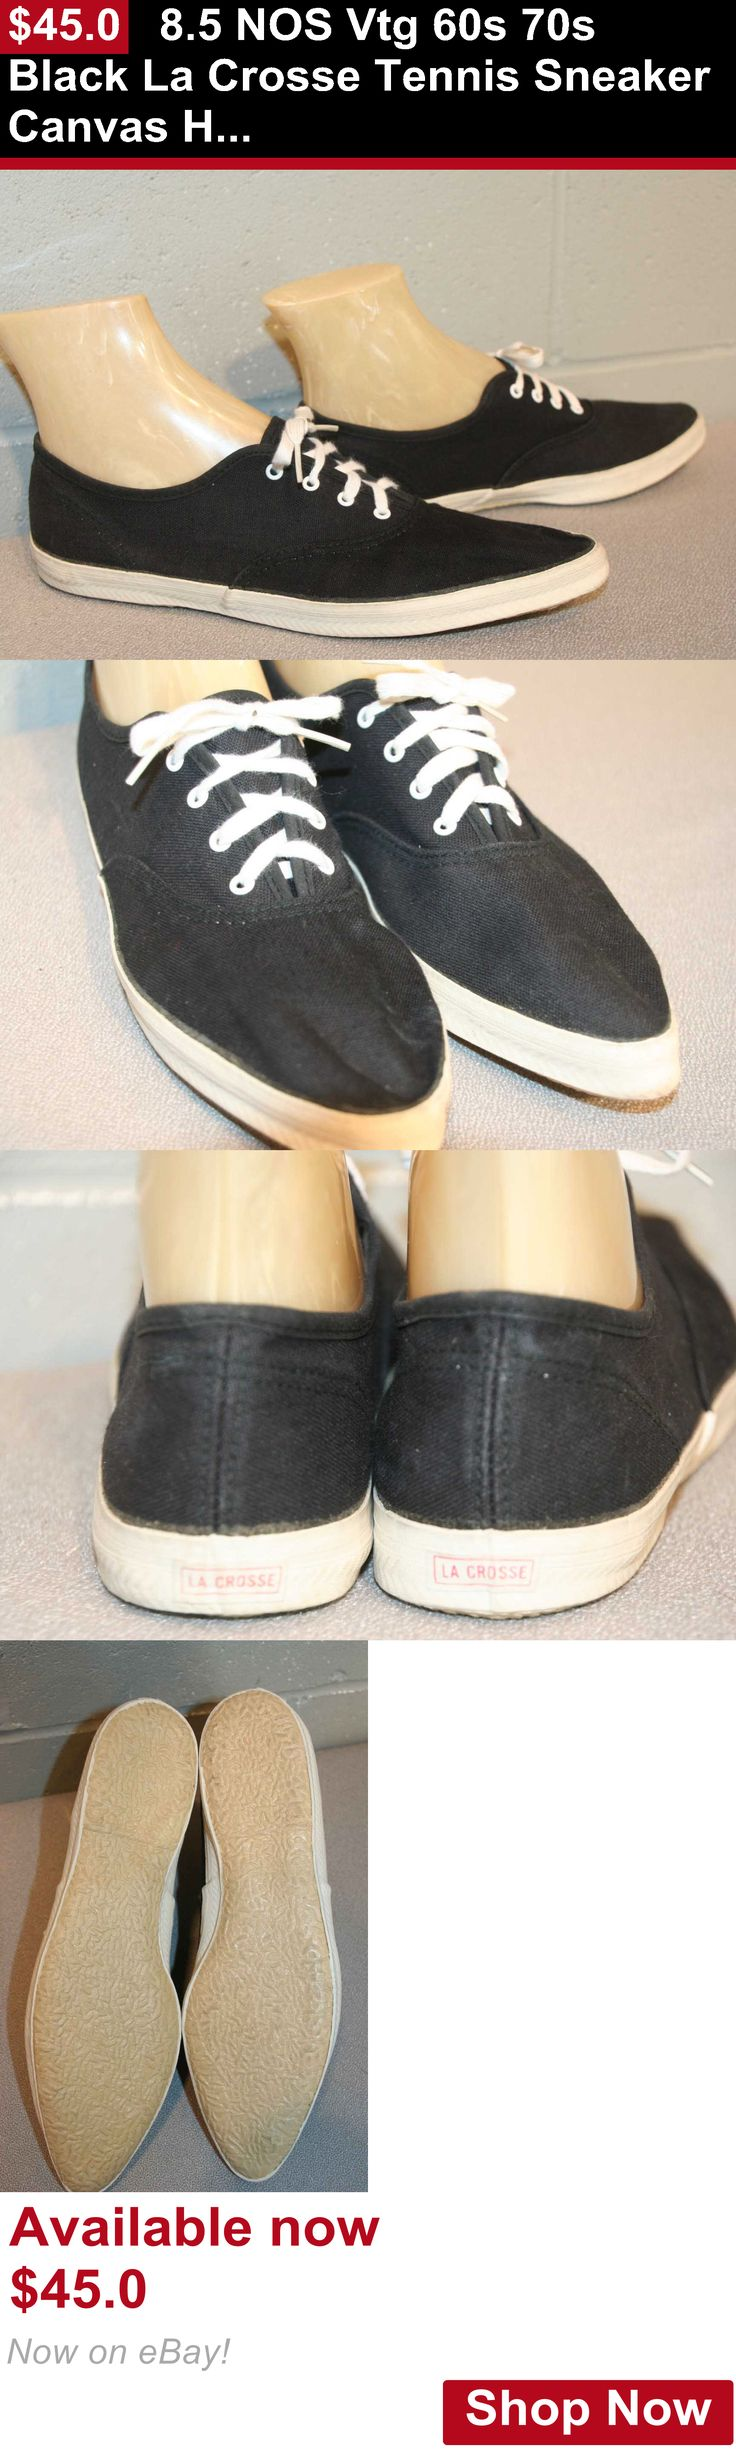 Women vintage clothing and shoes: 8.5 Nos Vtg 60S 70S Black La Crosse Tennis Sneaker Canvas Hipster Pointed Shoe BUY IT NOW ONLY: $45.0